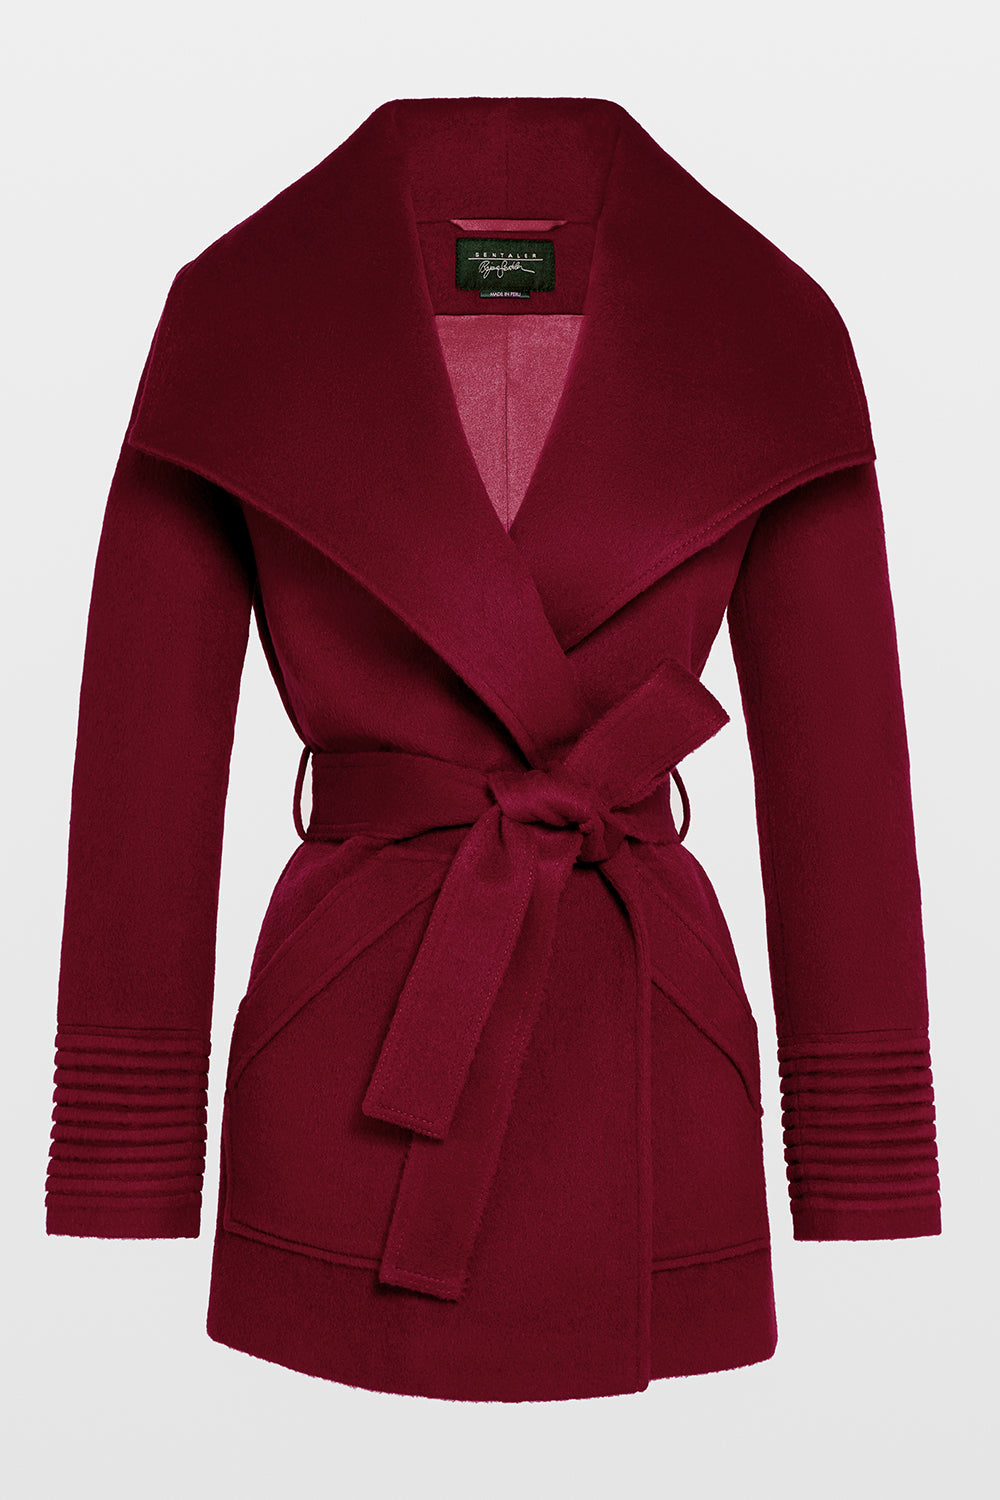 Sentaler Cropped Wide Collar Wrap Coat featured in Baby Alpaca and available in Garnet Red. Seen off model.